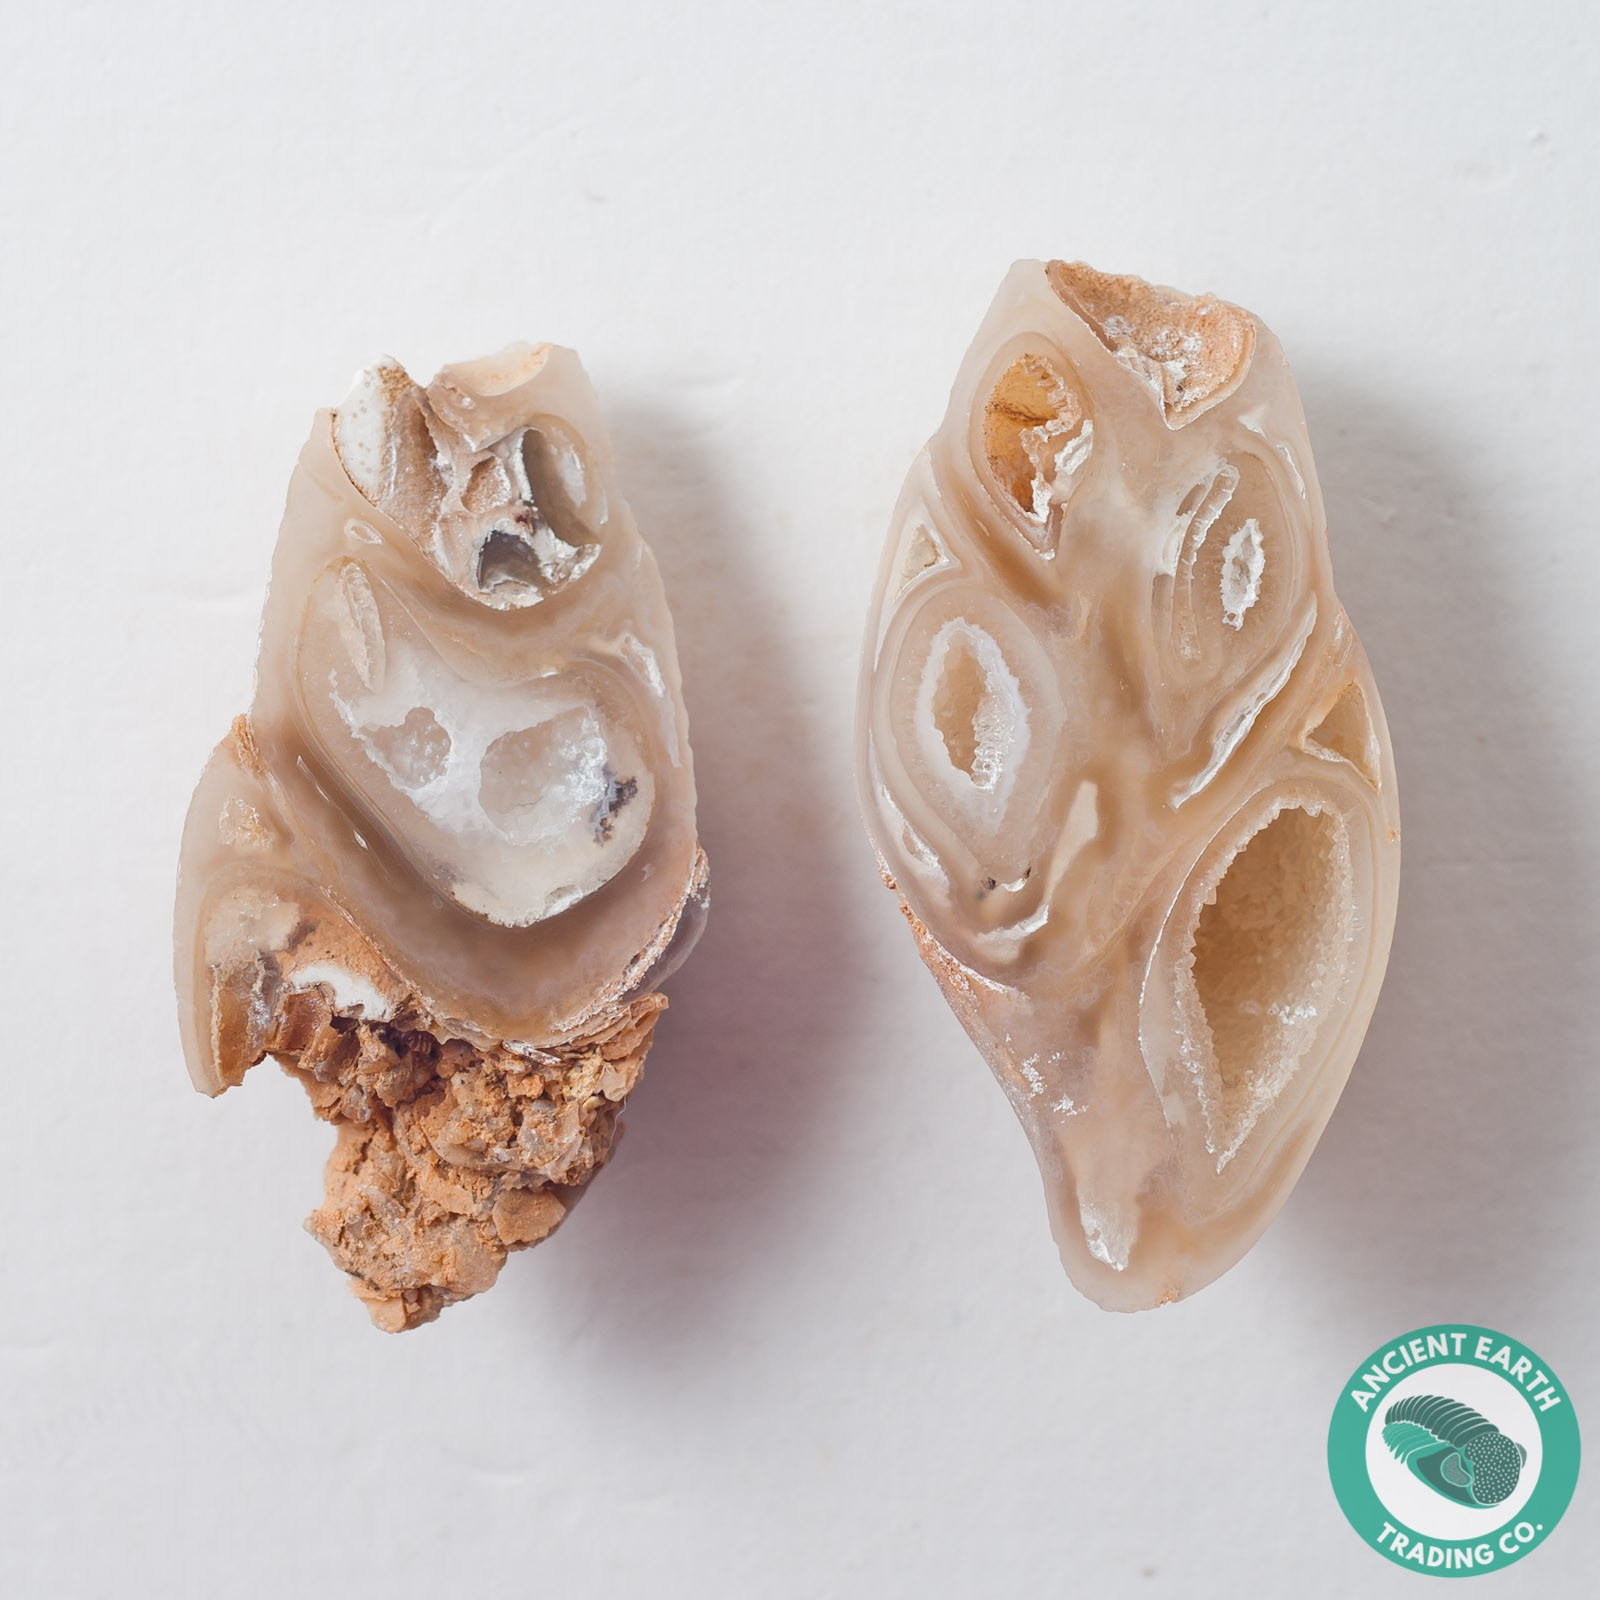 1.81 in Polished Agate Split Pair Gastropod from Western Sahara